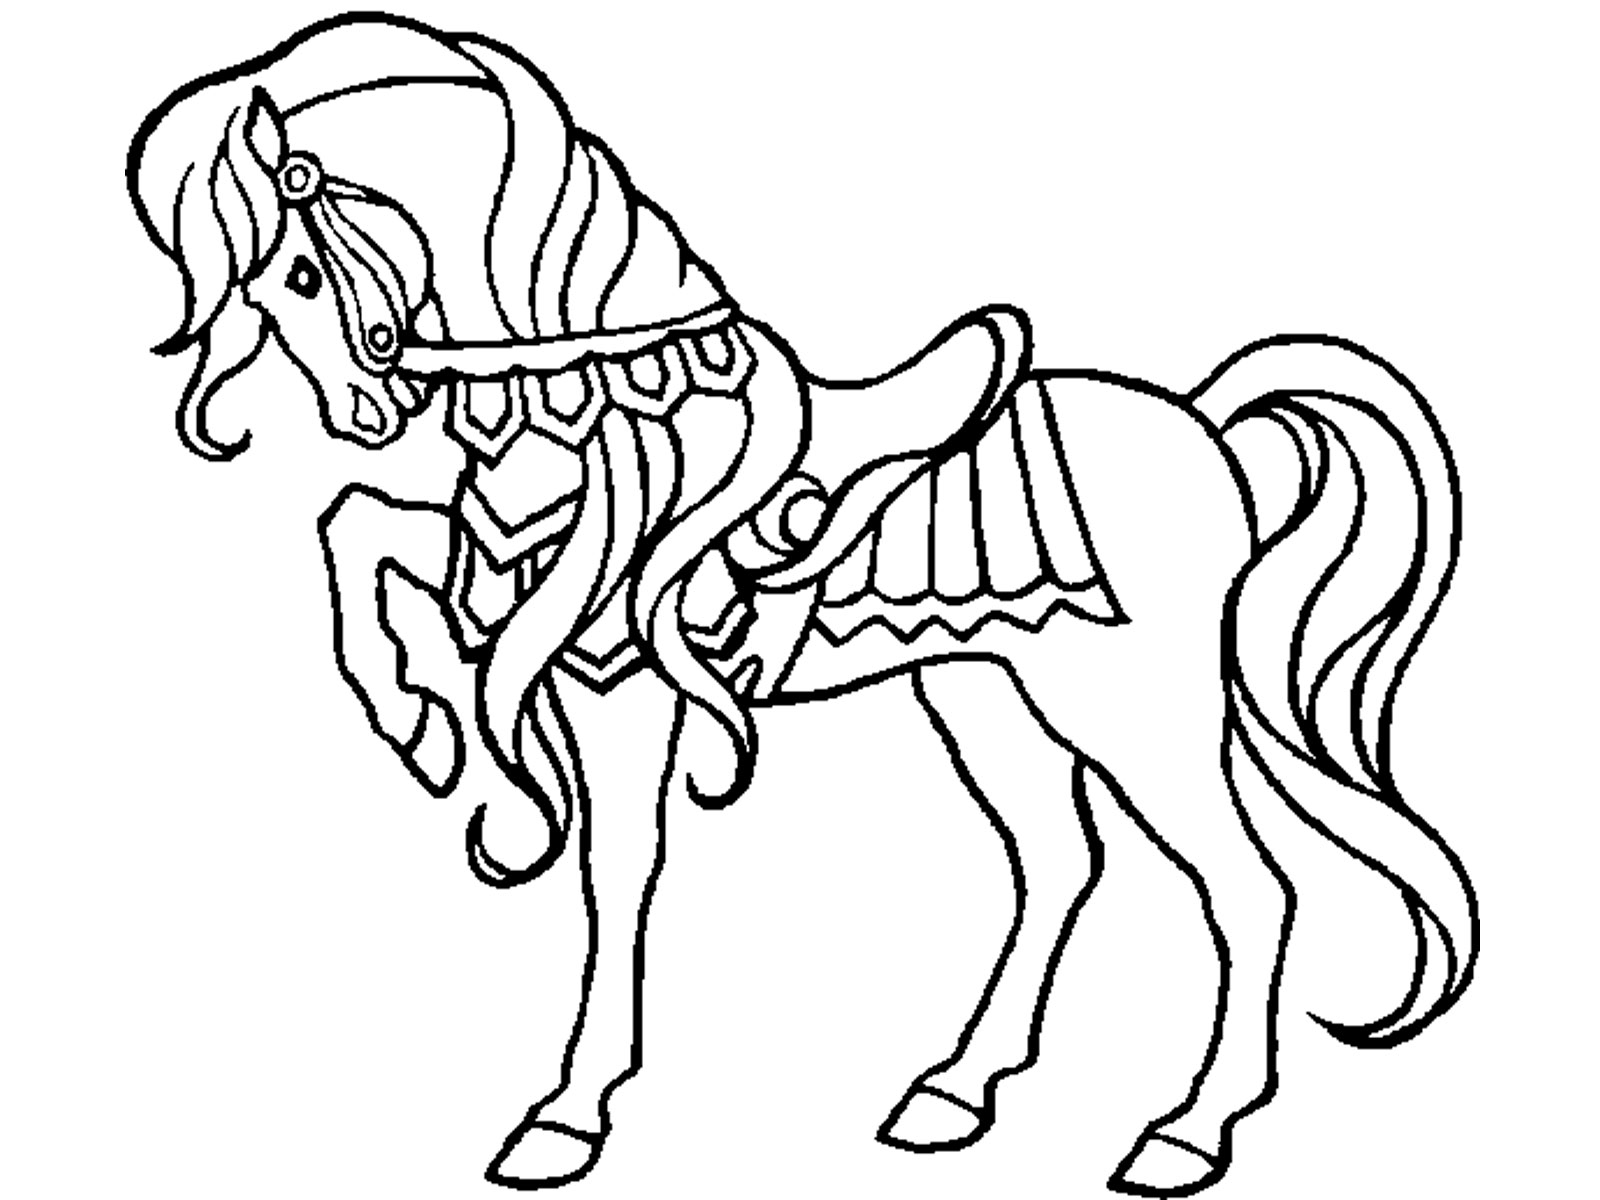 horse coloring sheets horse coloring pictures to print beautiful elegant sheets coloring horse